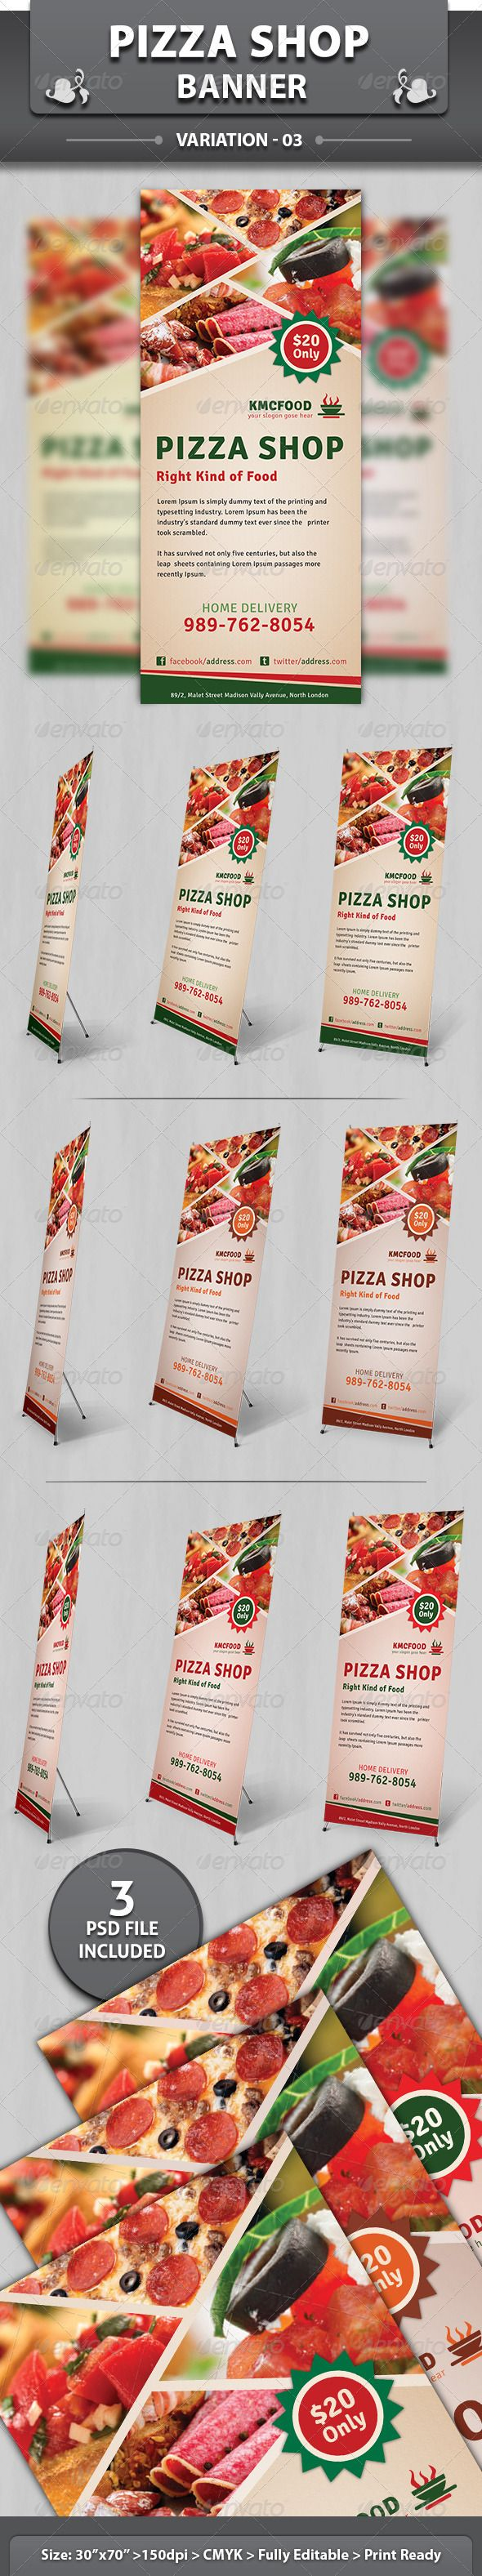 Digital banner design for psd files - Restaurant Business Banner Volume 2